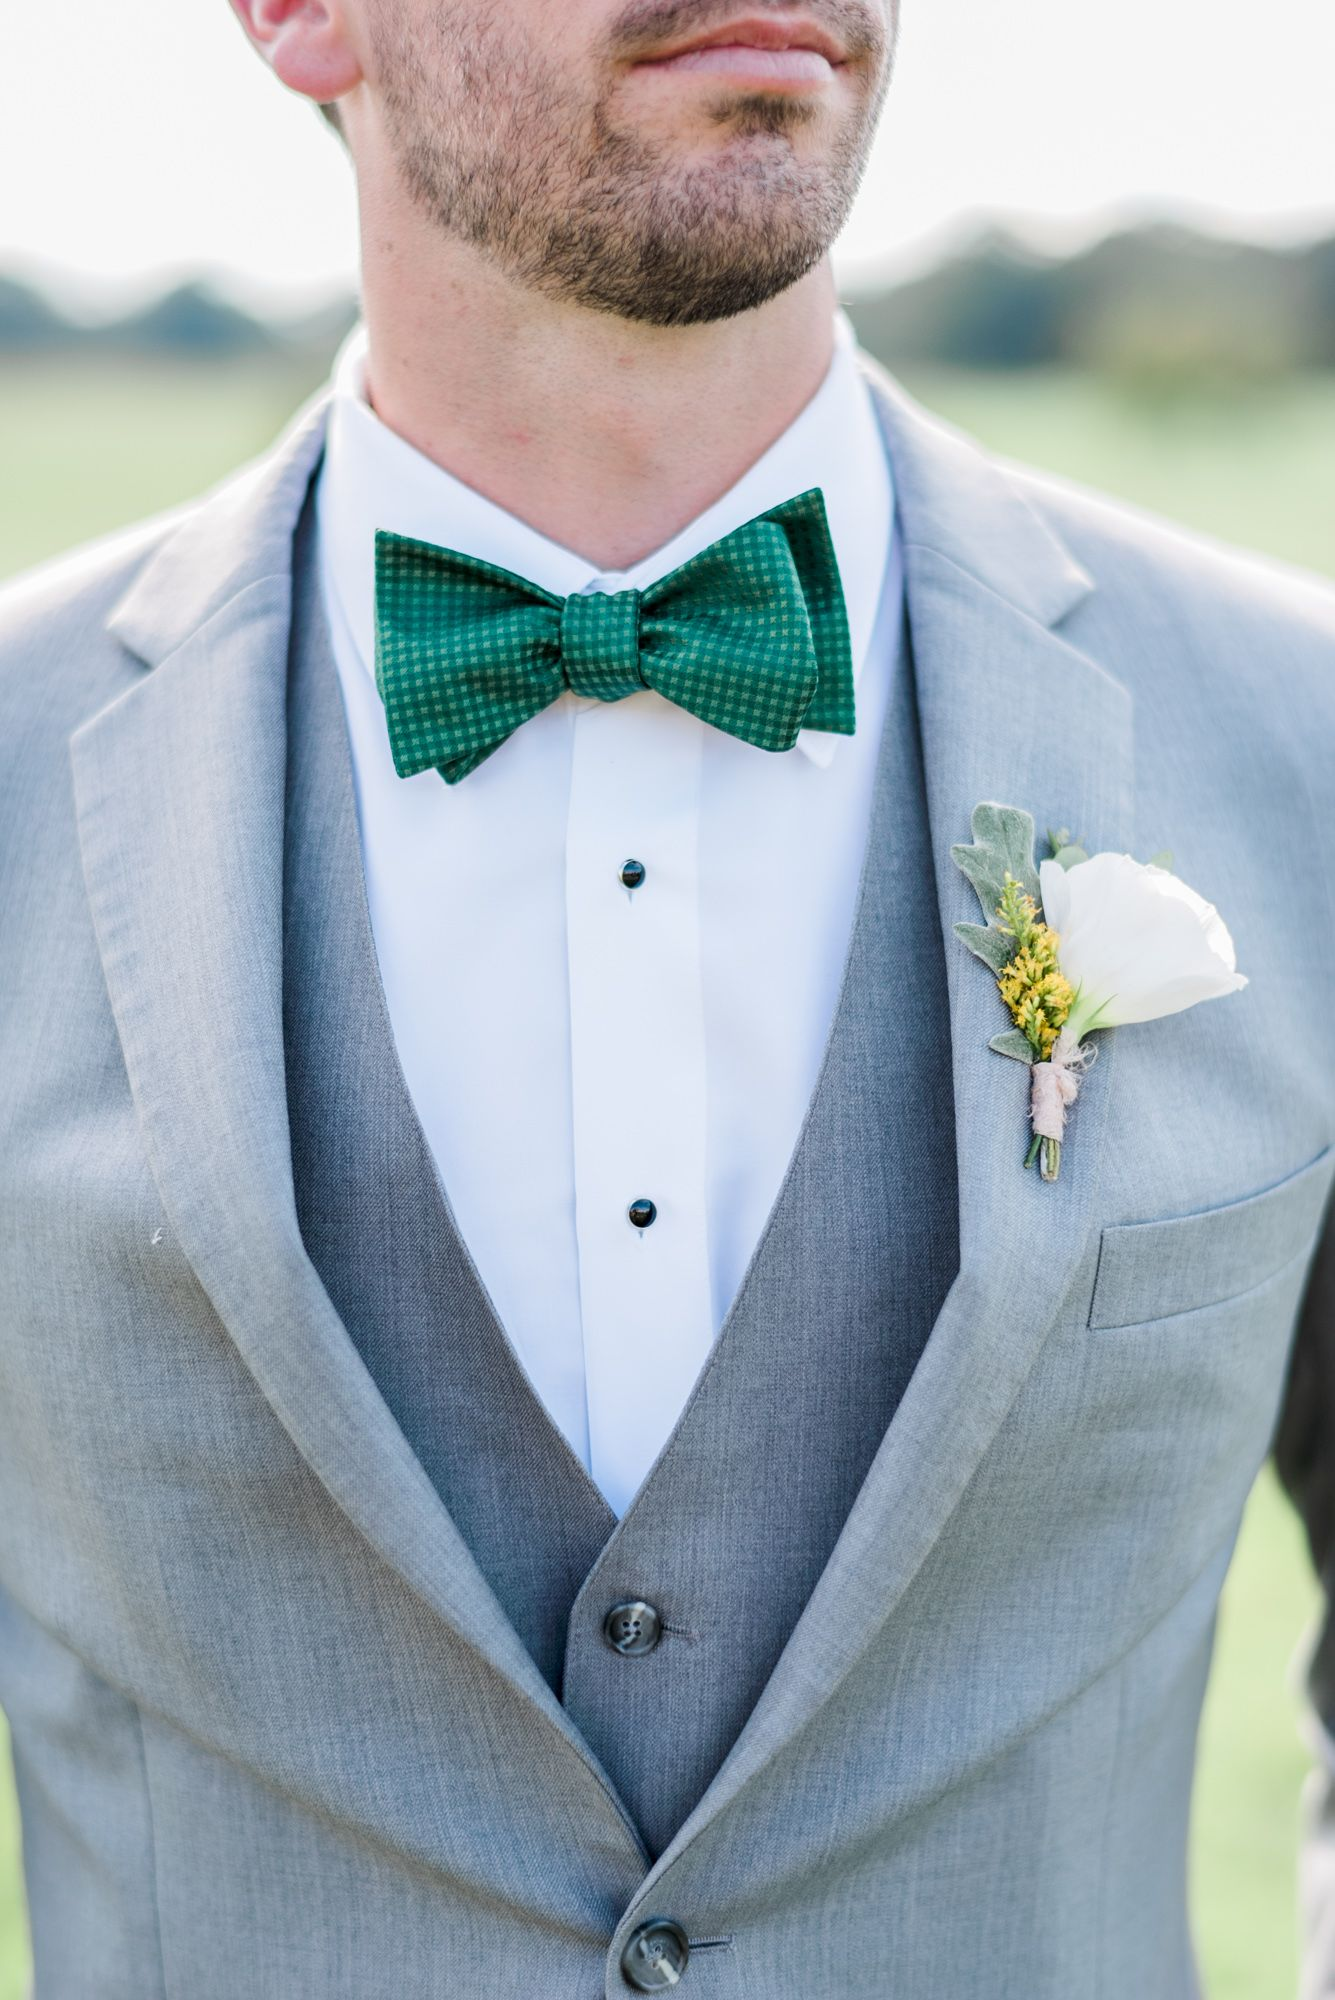 Falling In Love With Late Summer Wedding | Pinterest | Green bow tie ...